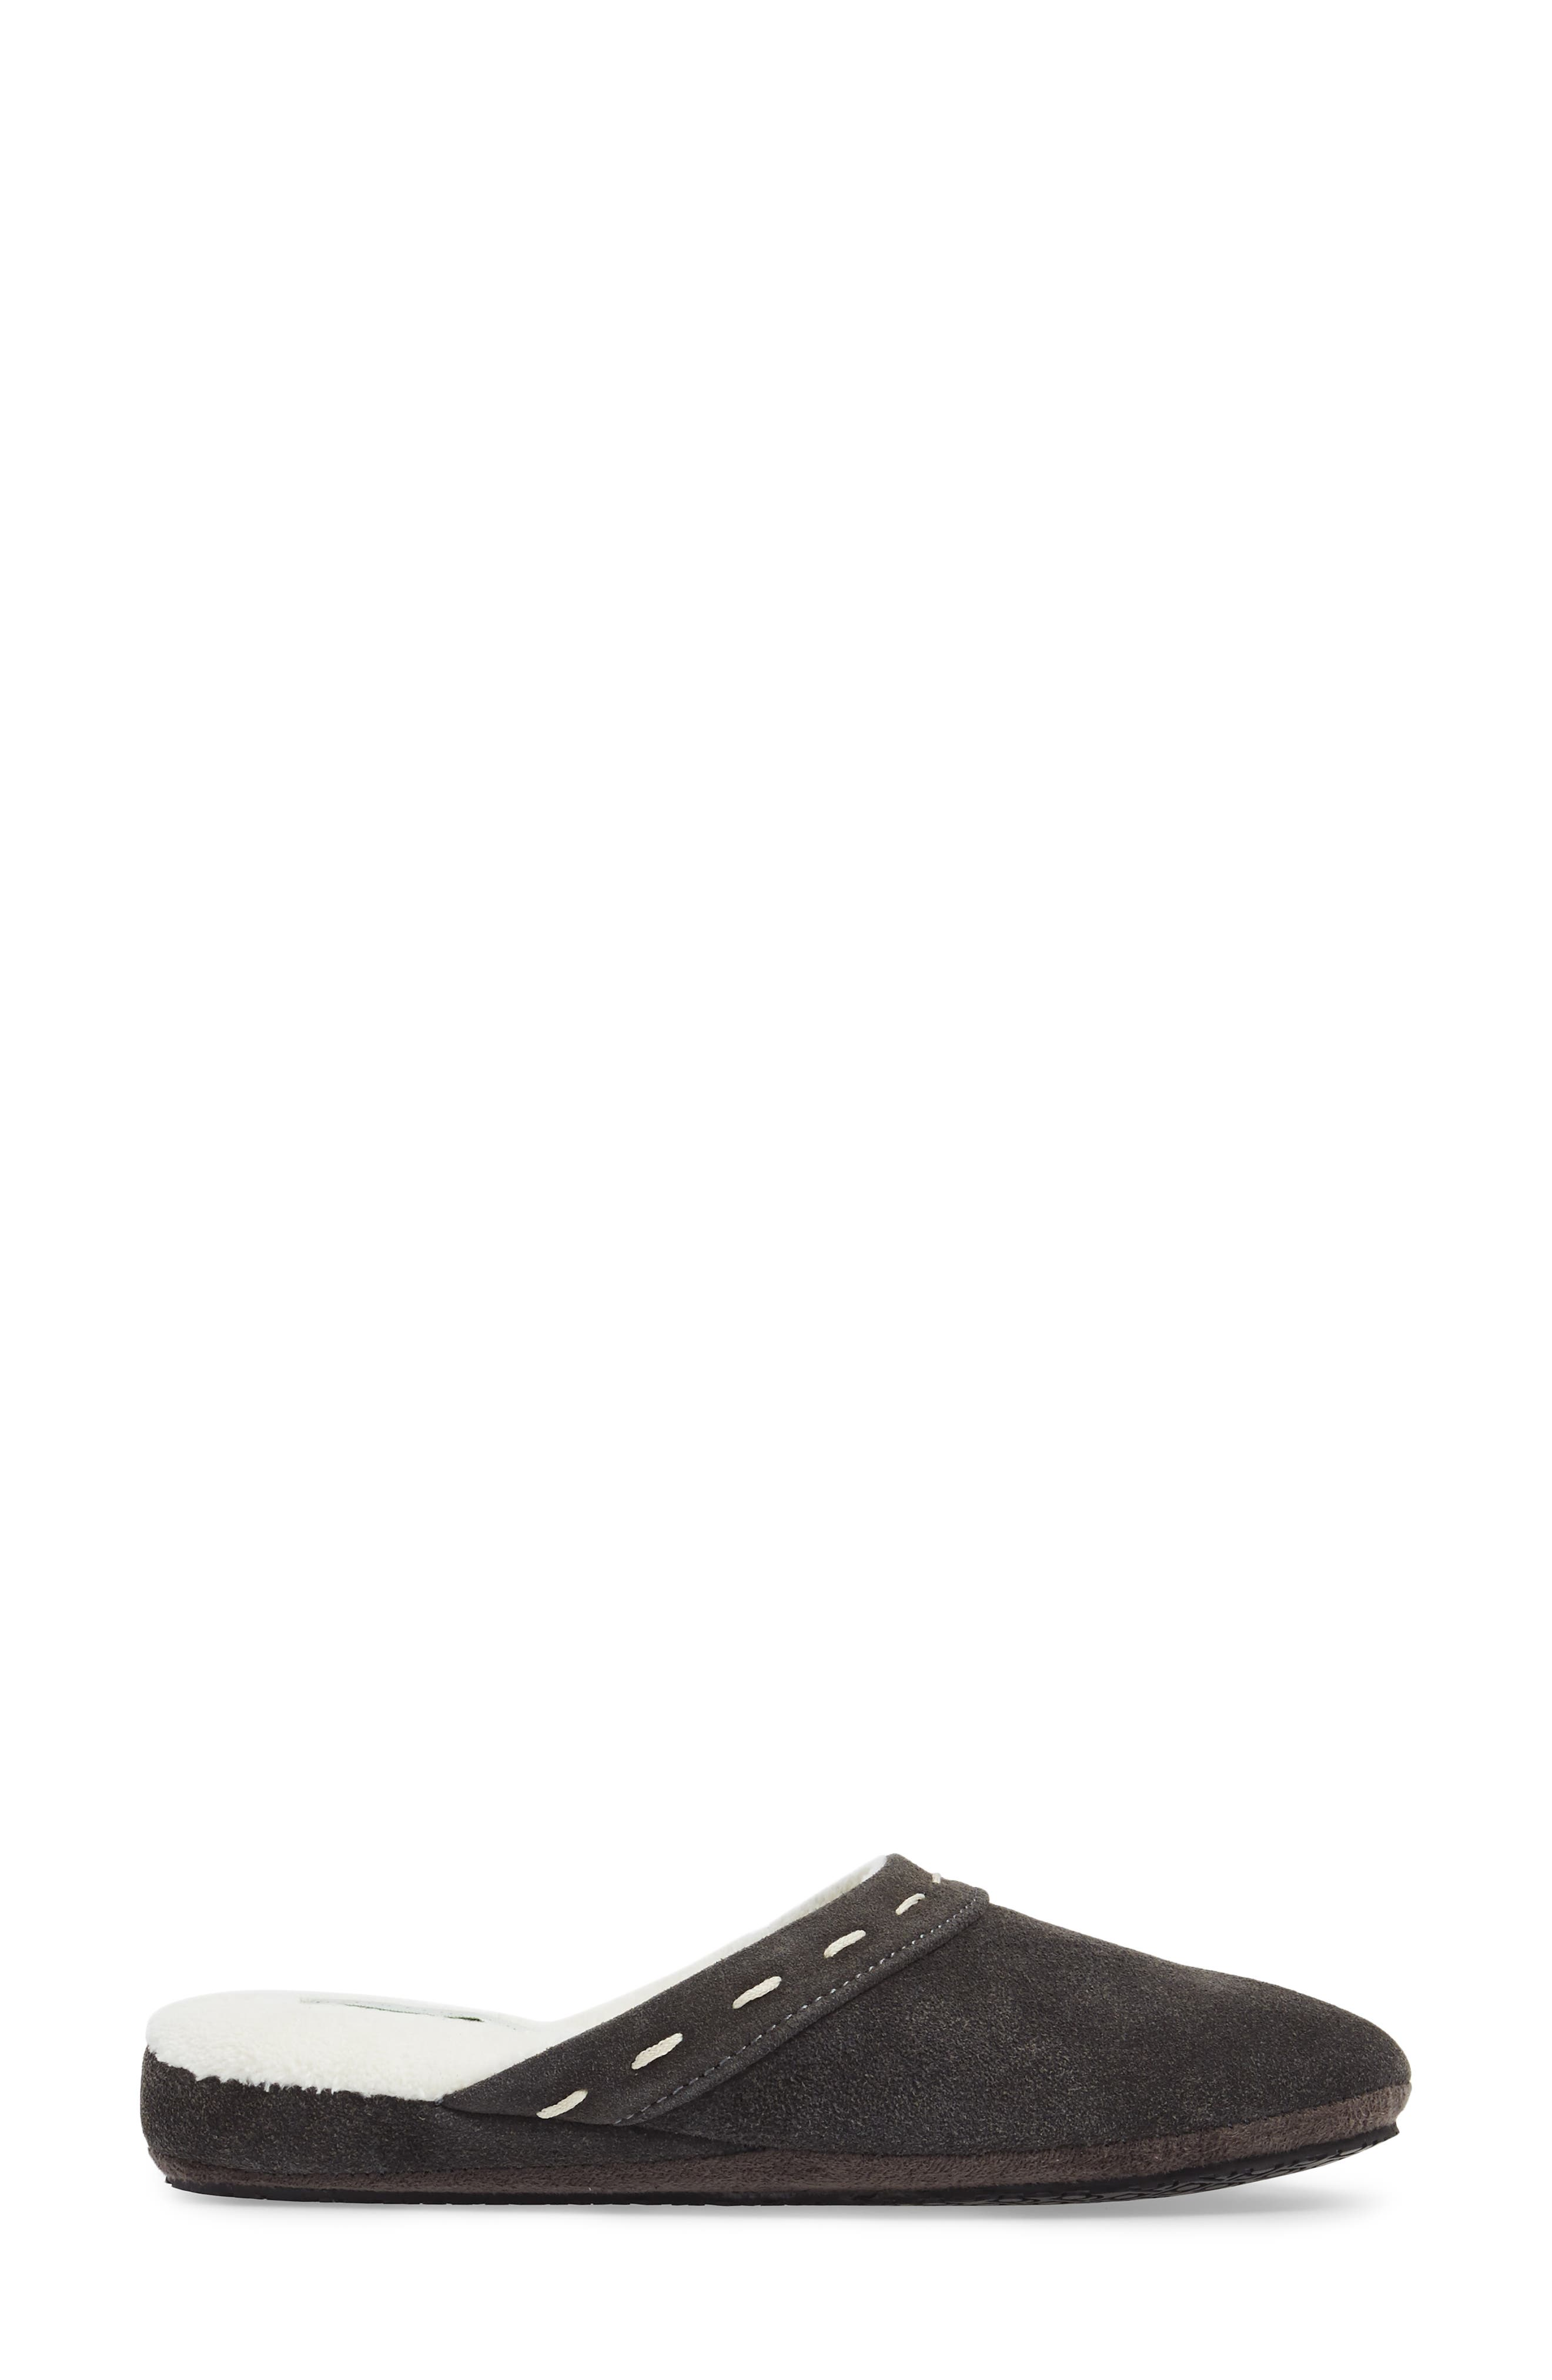 Mayfair Wedge Slipper,                             Alternate thumbnail 3, color,                             CHARCOAL SUEDE